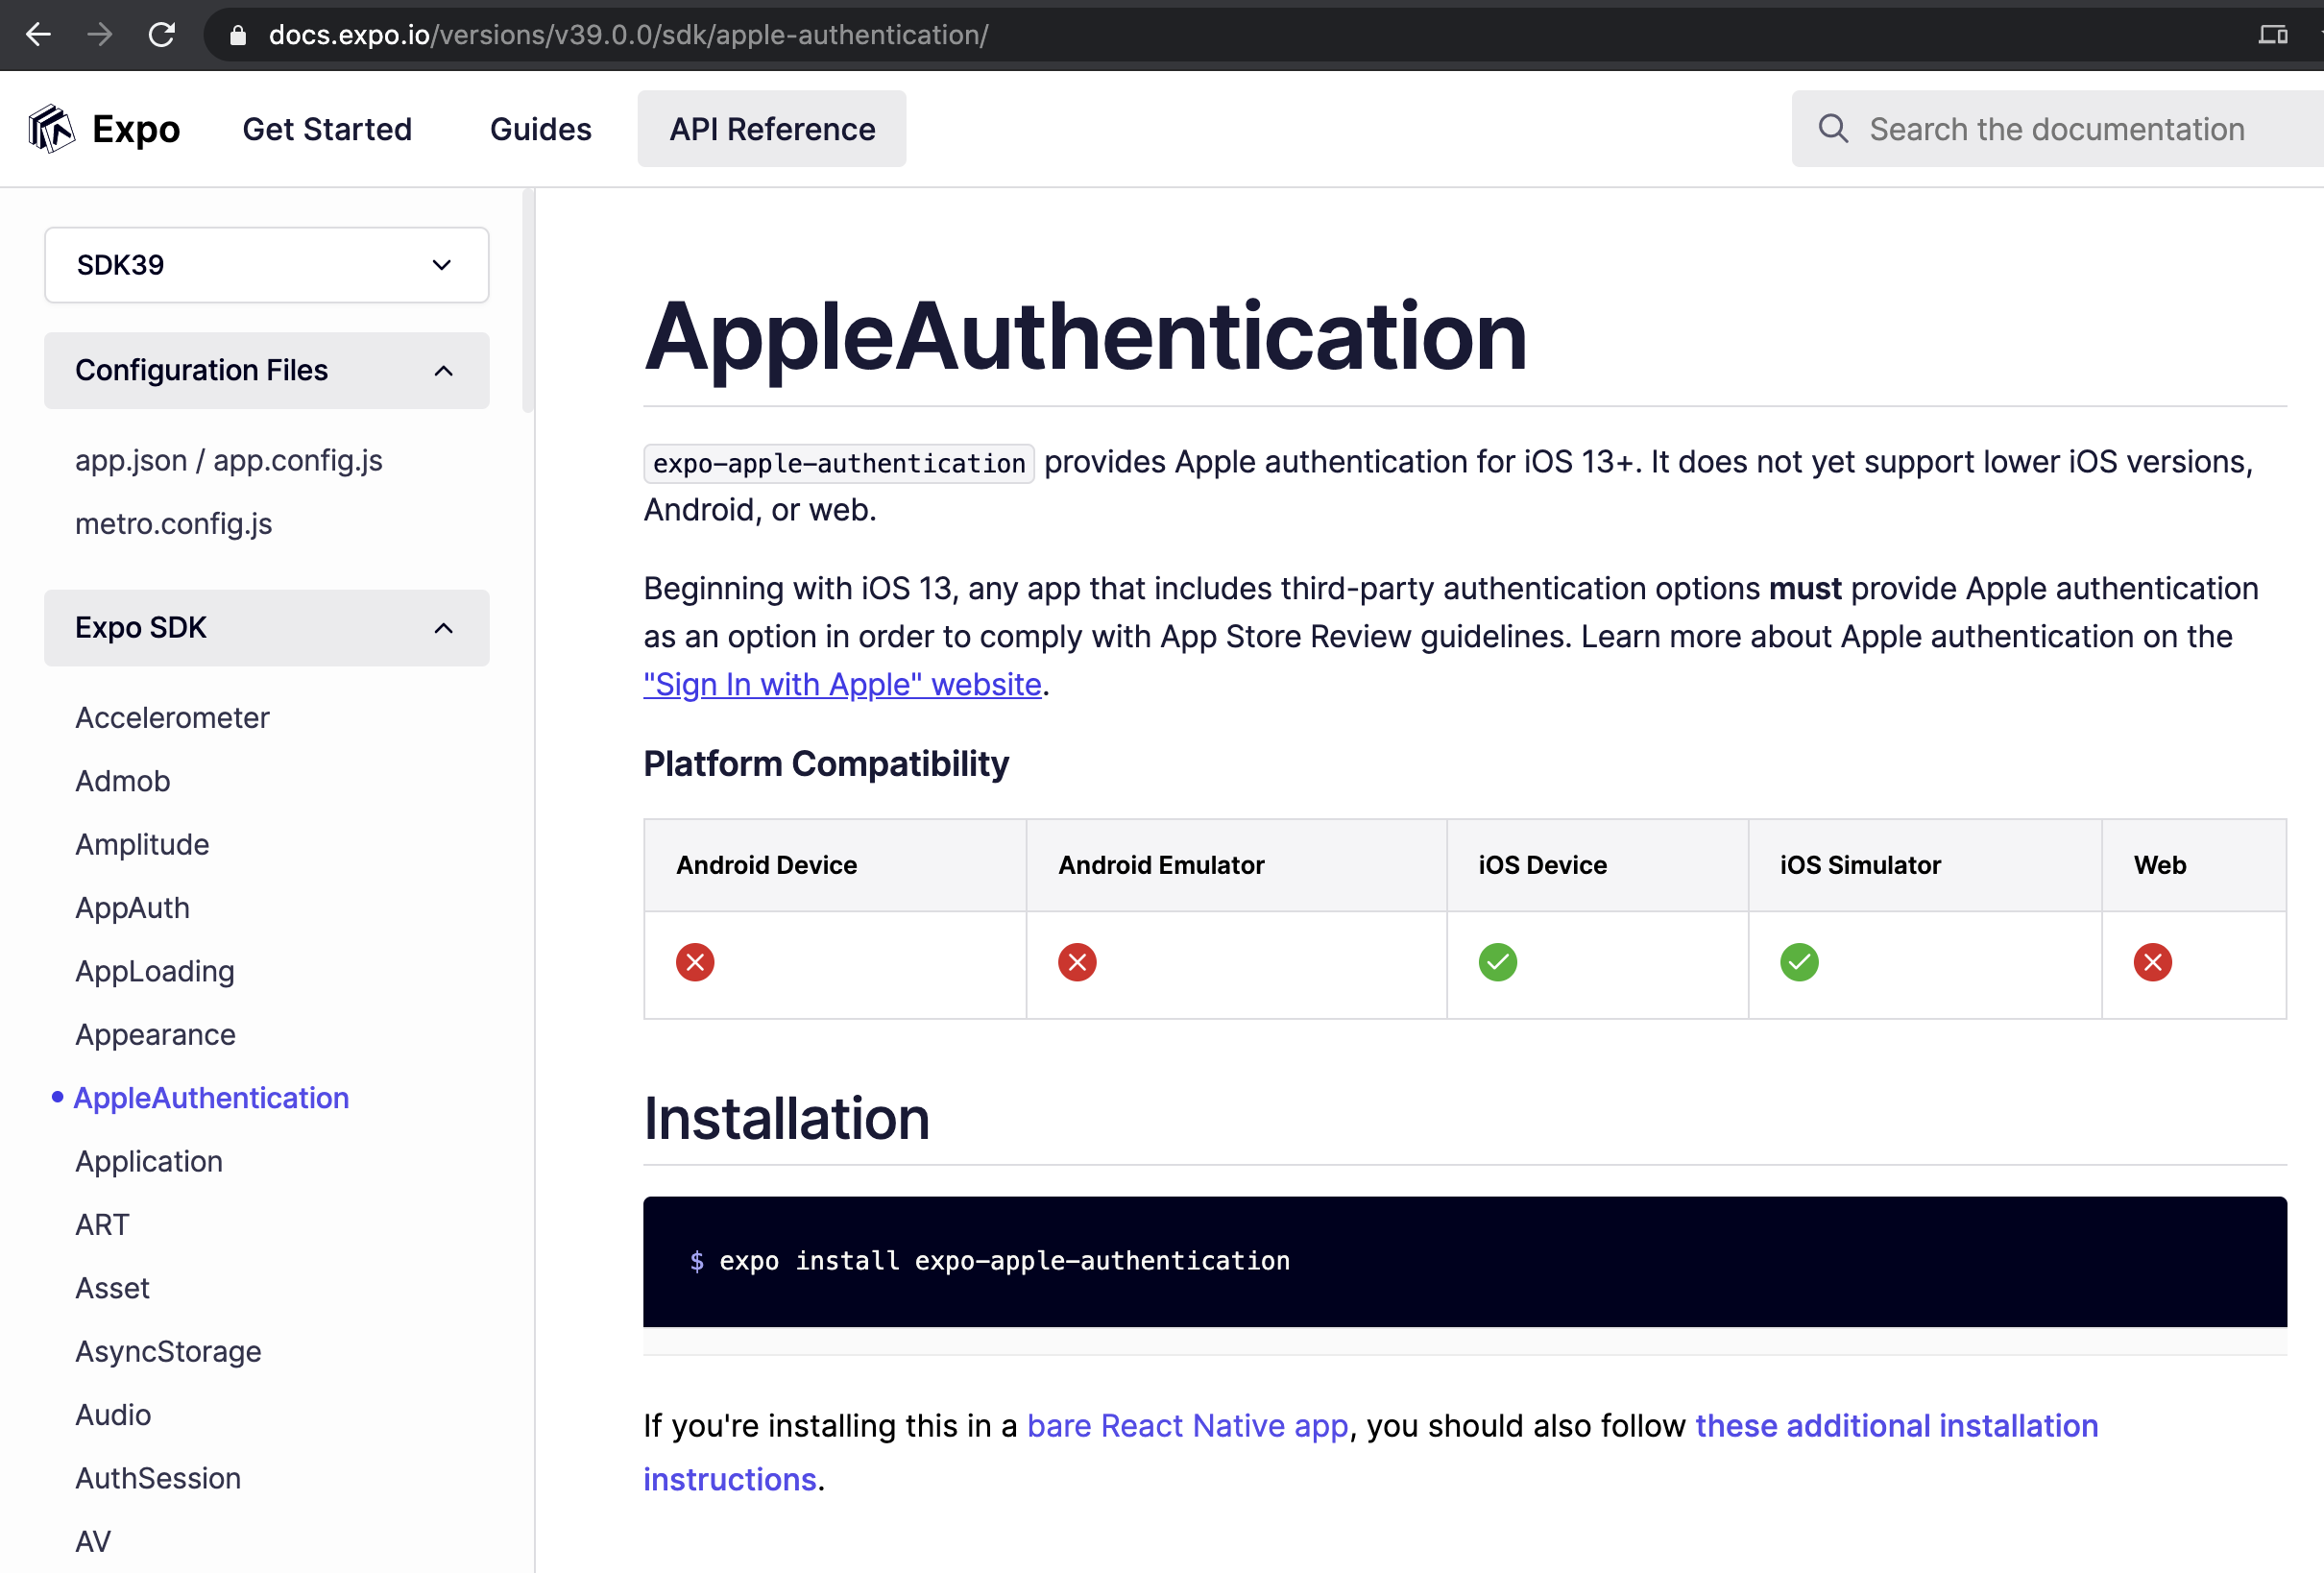 Expo's AppleAuthentication library, which doesn't work on Android or web